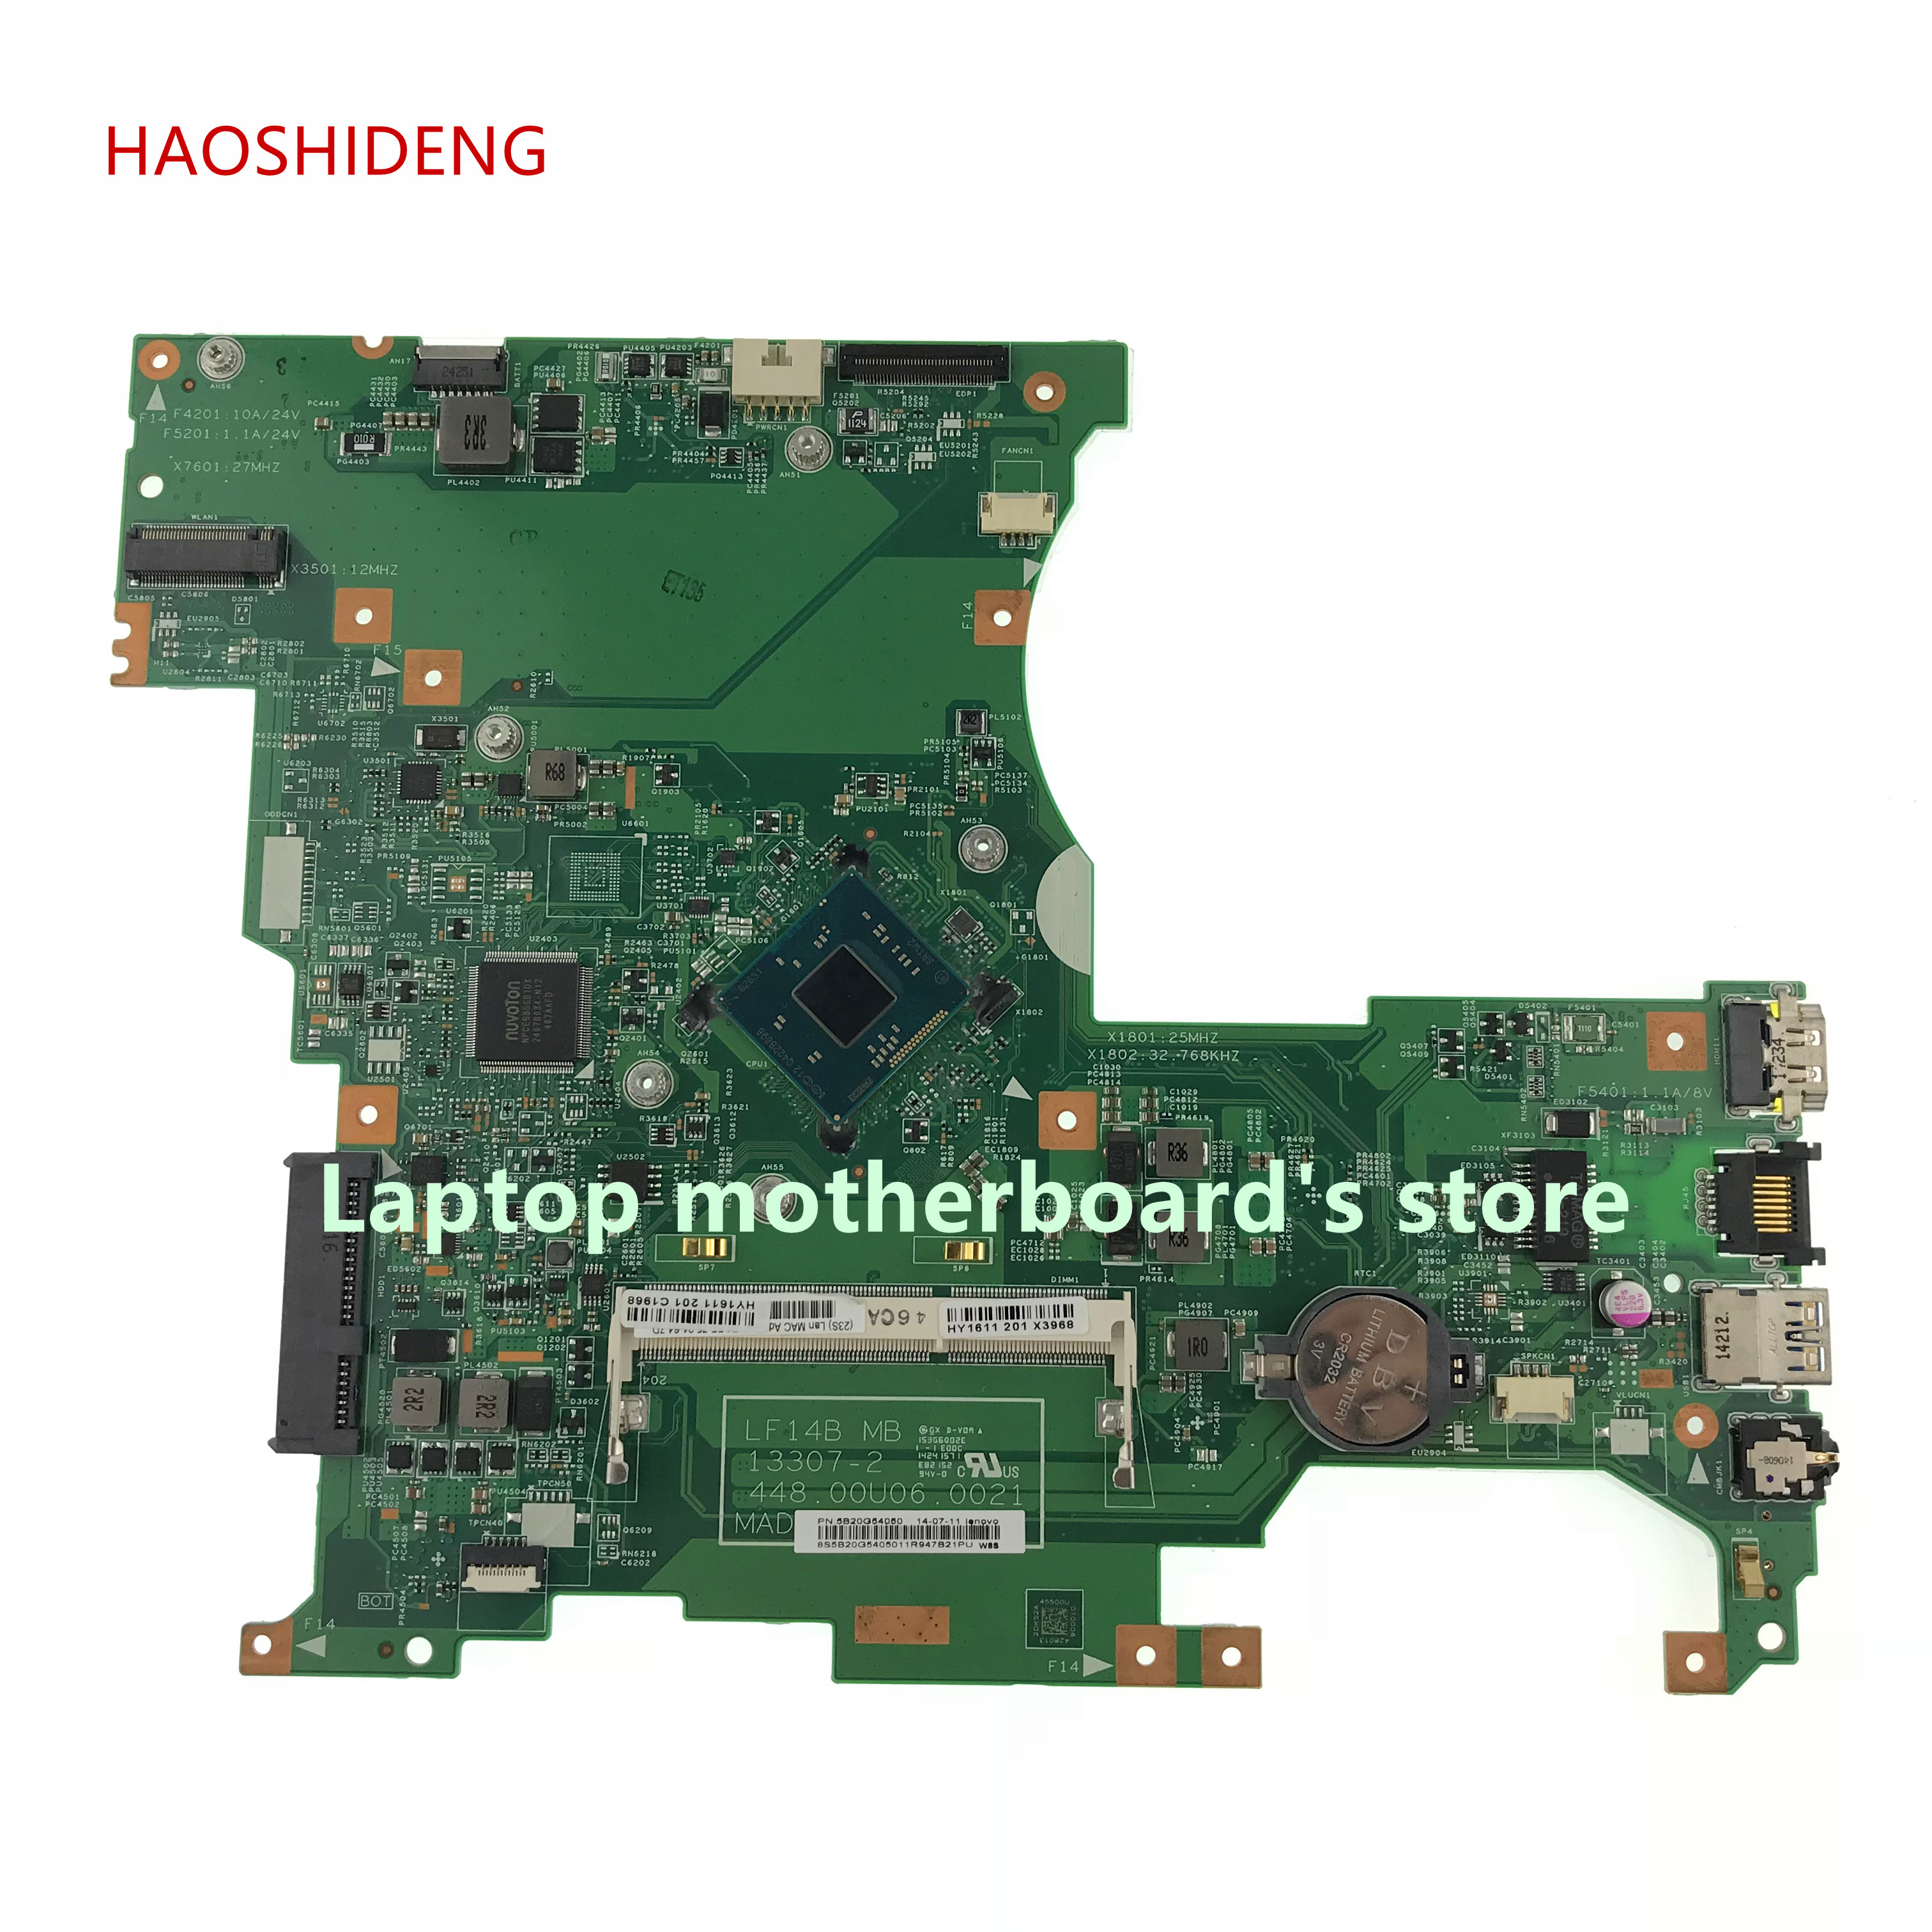 цена HAOSHIDENG 5B20G54050 448.00U06.0021 For lenovo Ideapad Flex 2-14 laptop motherboard All functions fully Tested